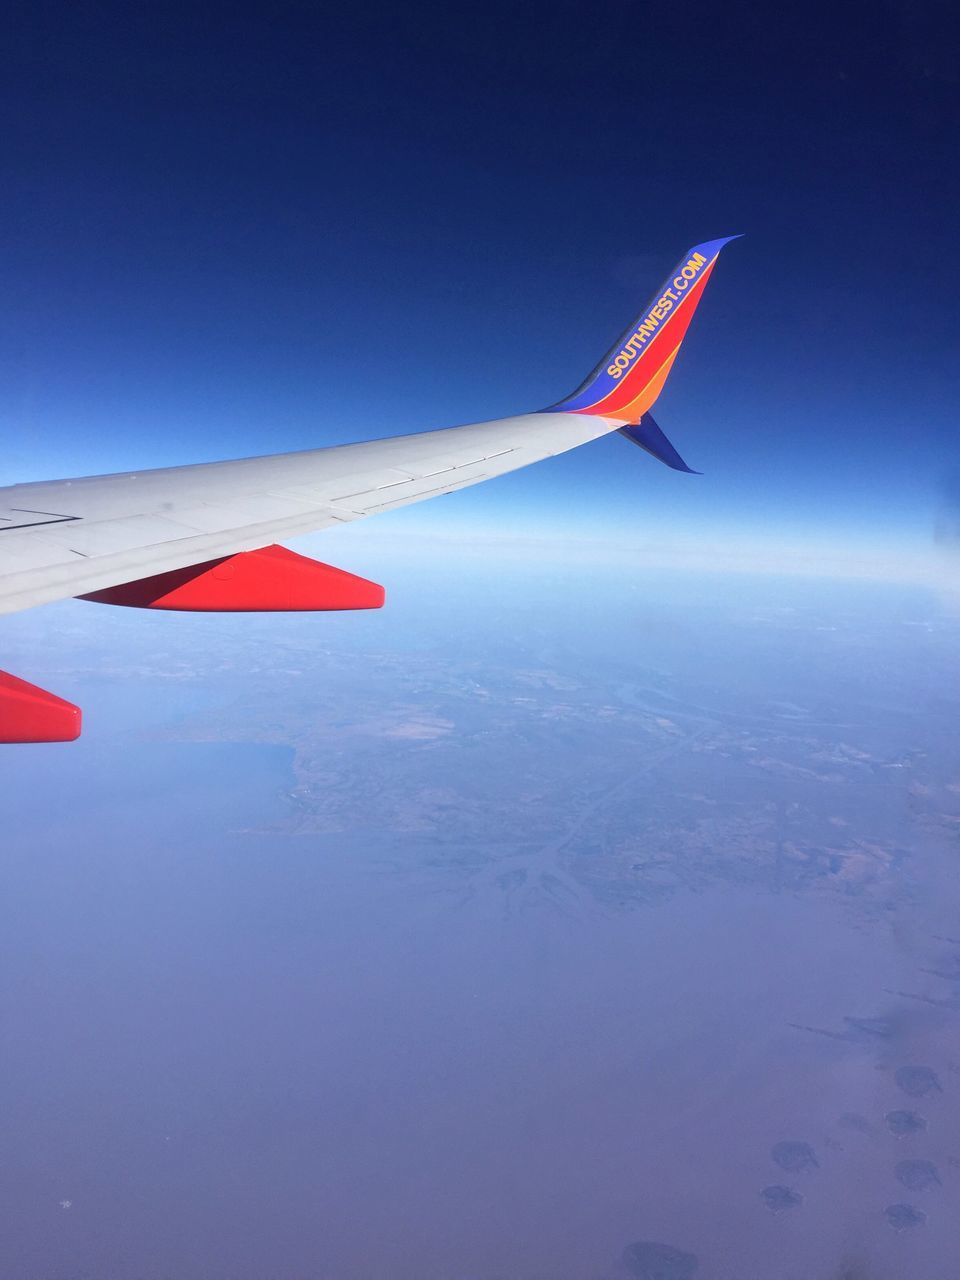 airplane, transportation, flying, aerial view, sky, airplane wing, no people, blue, aircraft wing, air vehicle, nature, outdoors, day, mid-air, journey, red, beauty in nature, scenics